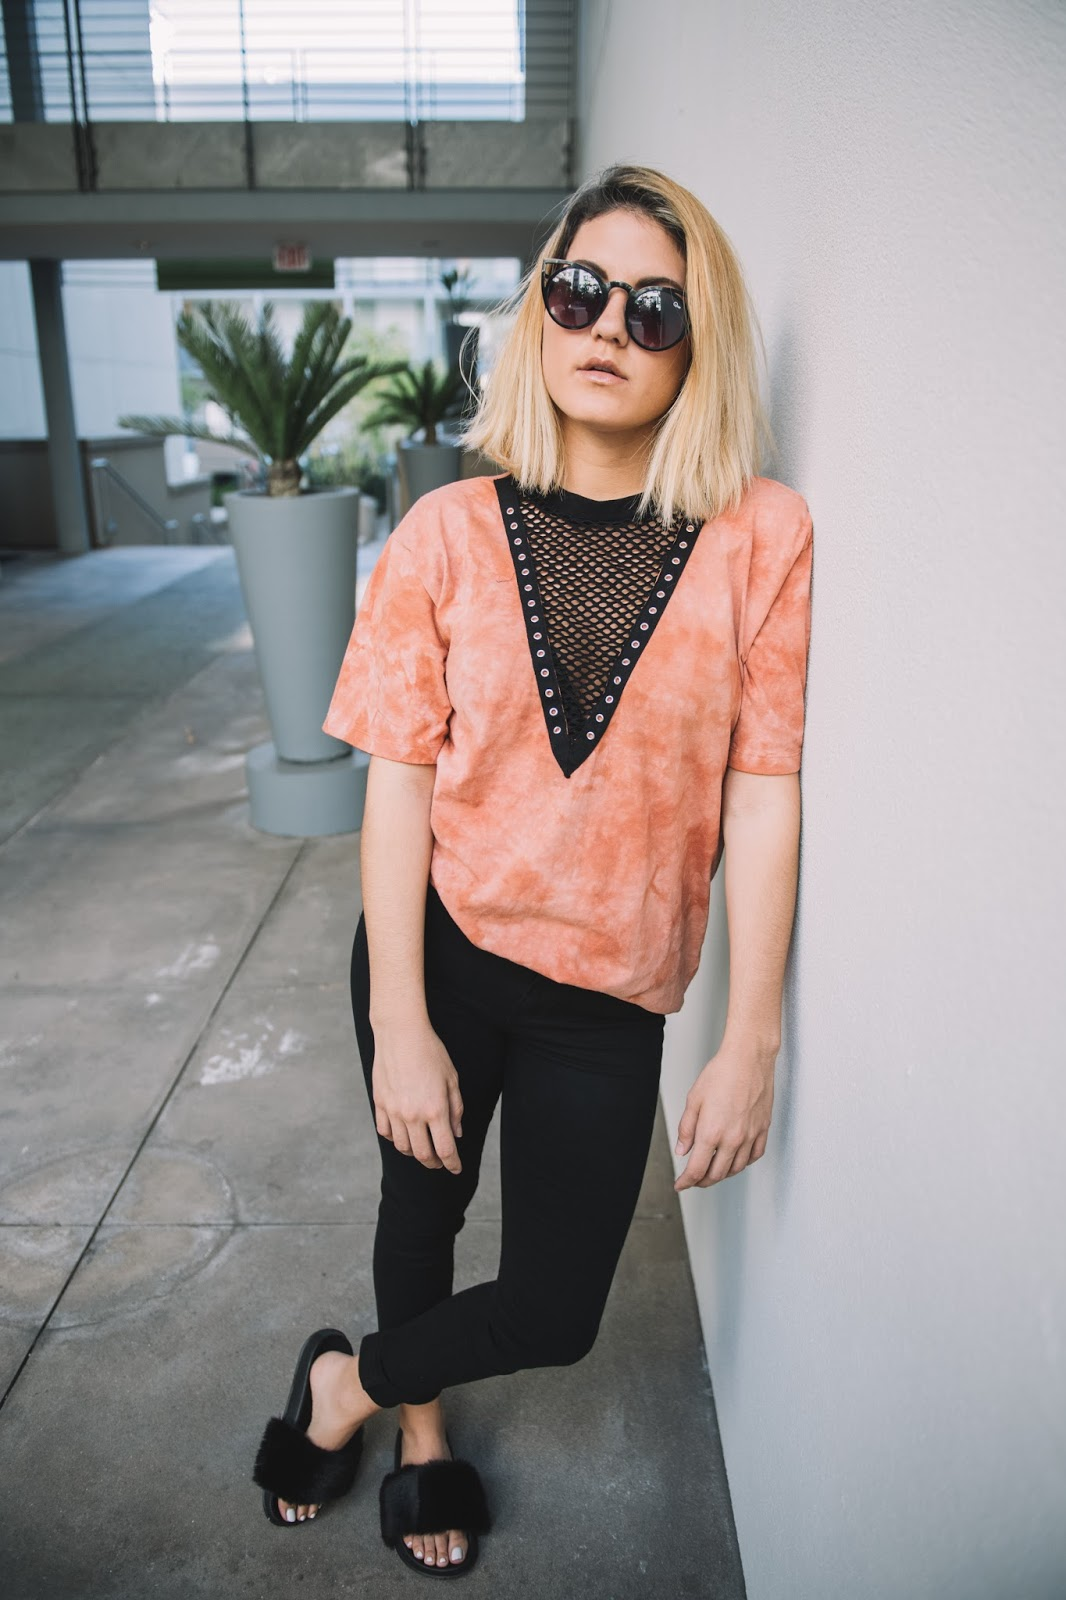 LA Fashion Blogger -- @ taylorwinkelmeyer